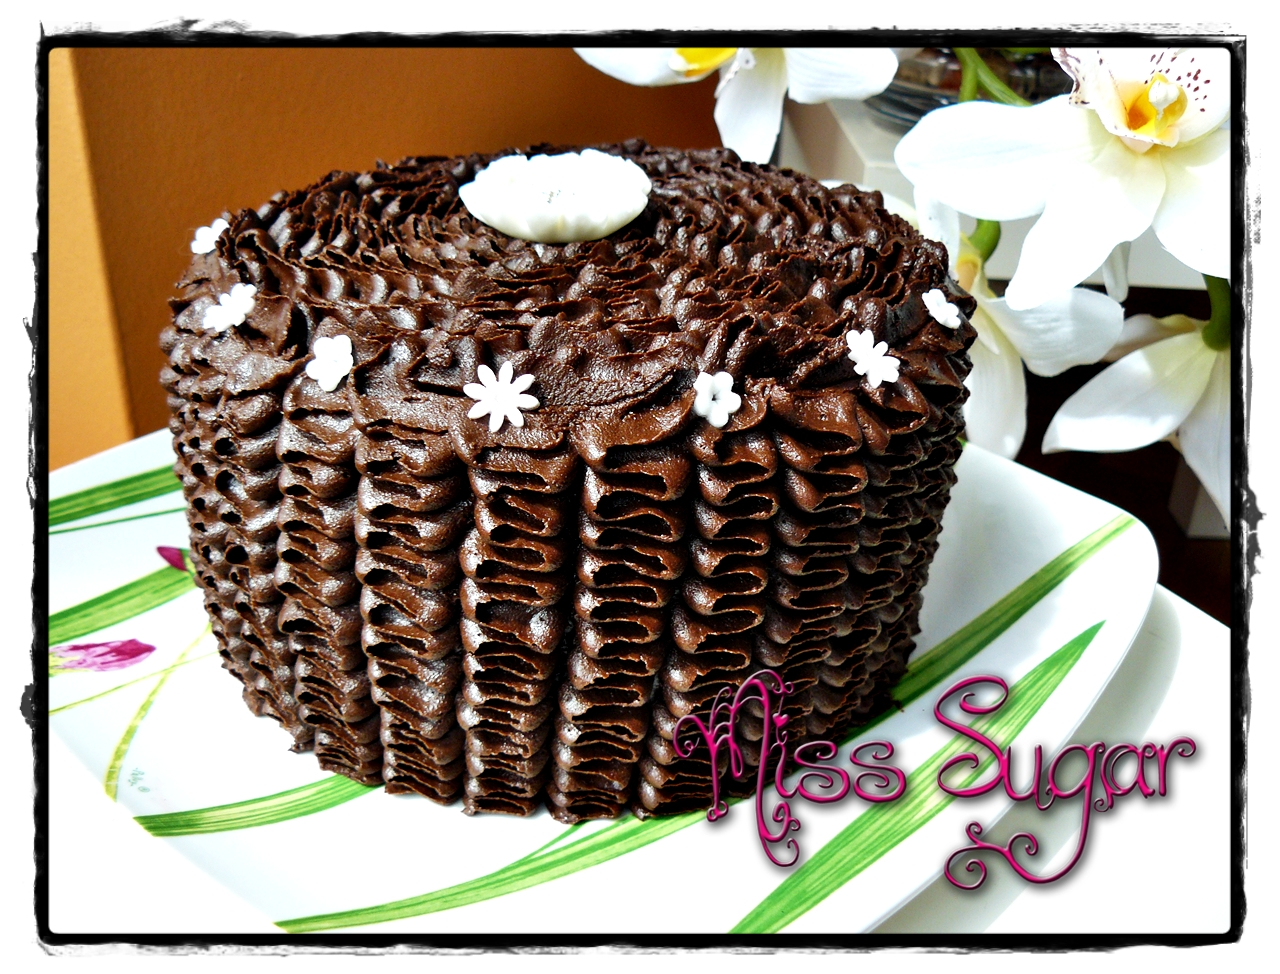 Miss Sugar: CHOCOLATE EXTREME CAKE RELLENA DE GANACHÉ DE MARSHMALLOWS ...